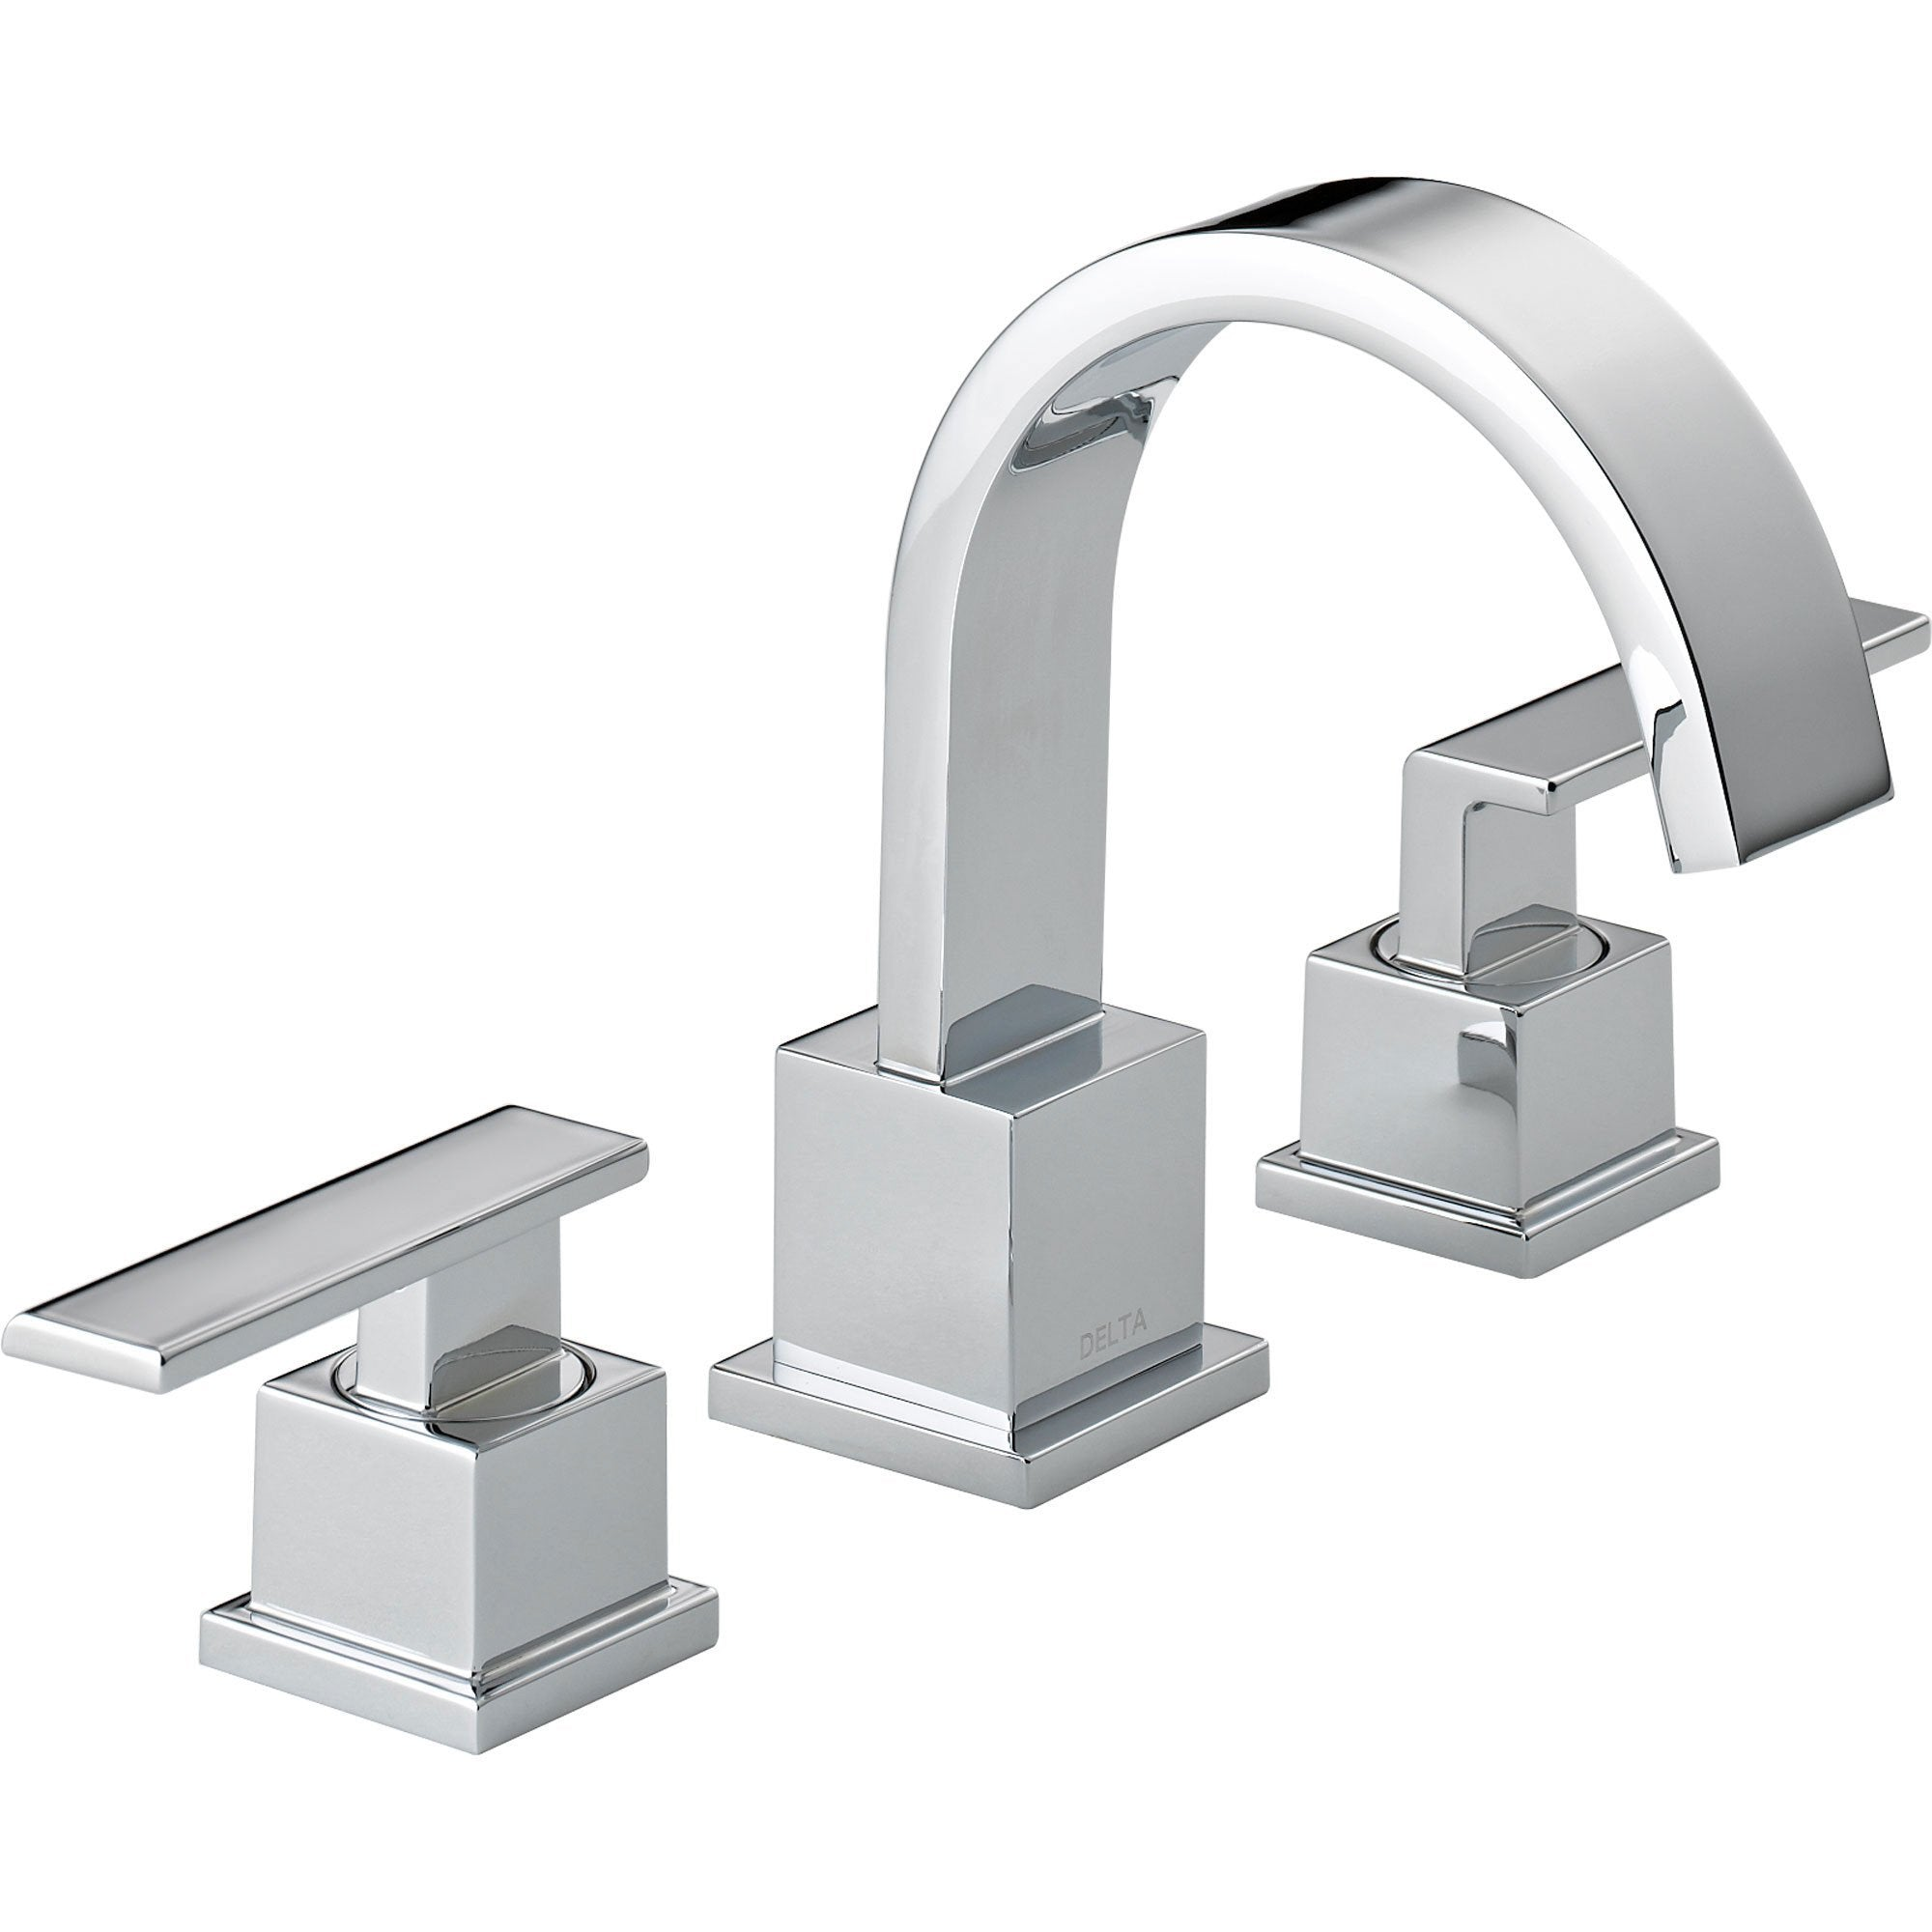 Delta Vero 8 in. Widespread 2-Handle High Arc Bathroom Faucet in Chrome 521802